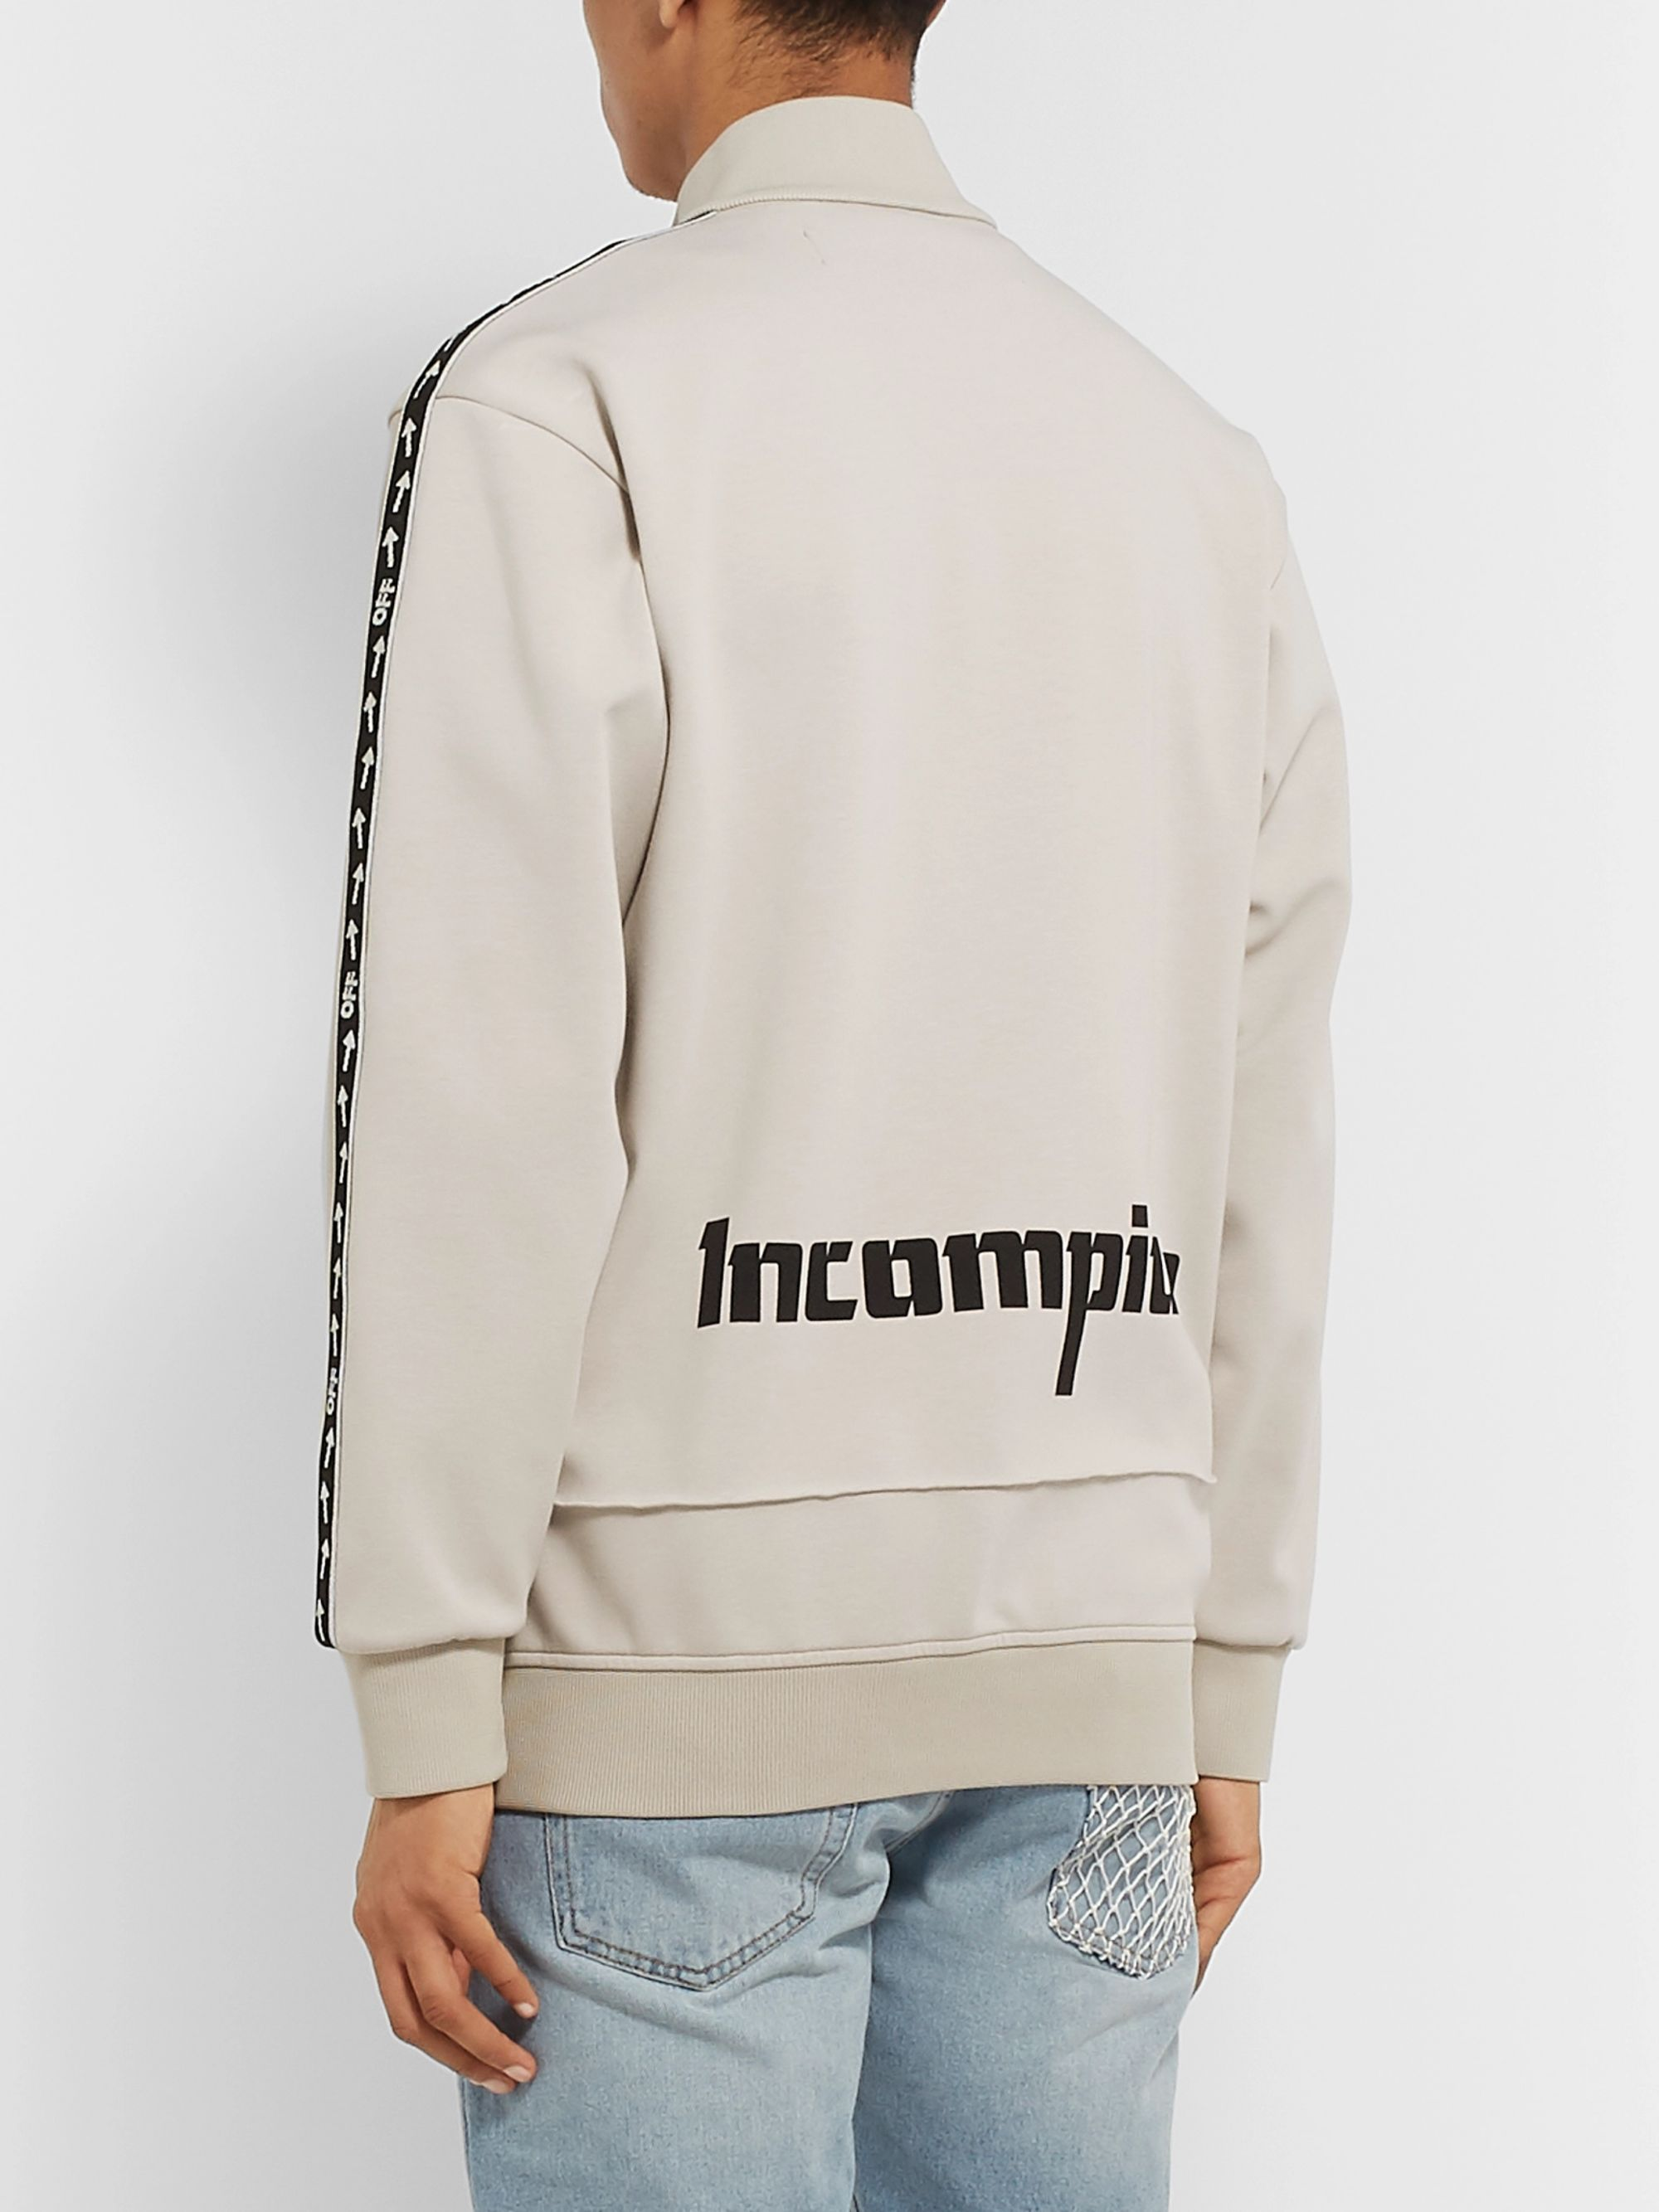 Off-White Incompiuto Printed Cotton-Blend Jersey Zip-Up Sweatshirt